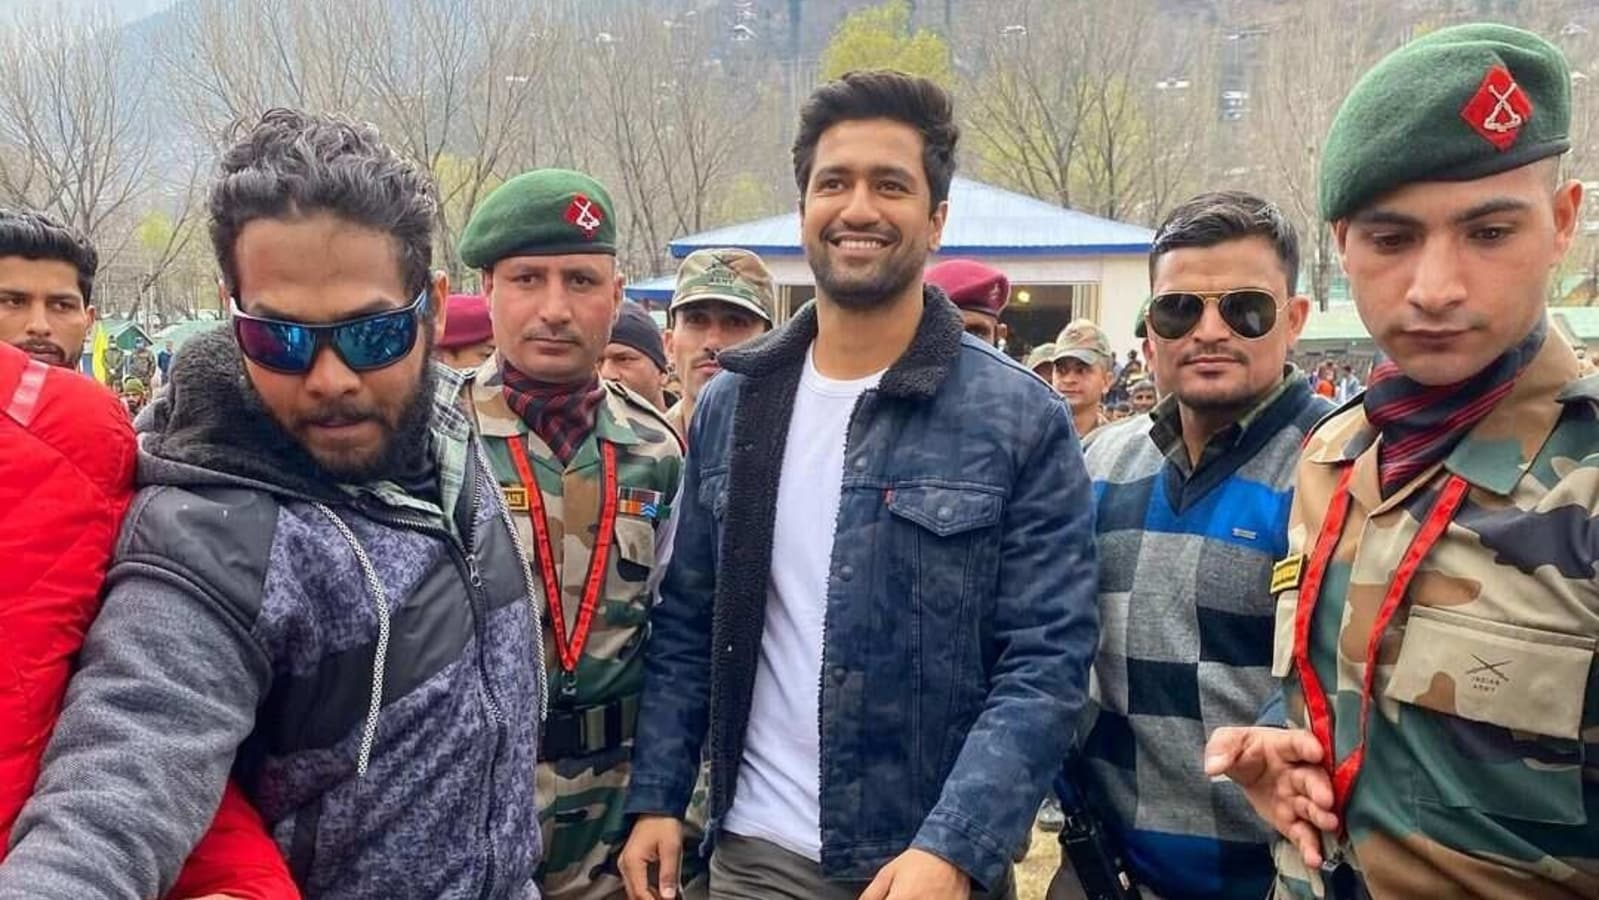 Vicky Kaushal visits Indian Army base camp in Uri, shares photos from his  'lovely day with the locals' | Hindustan Times